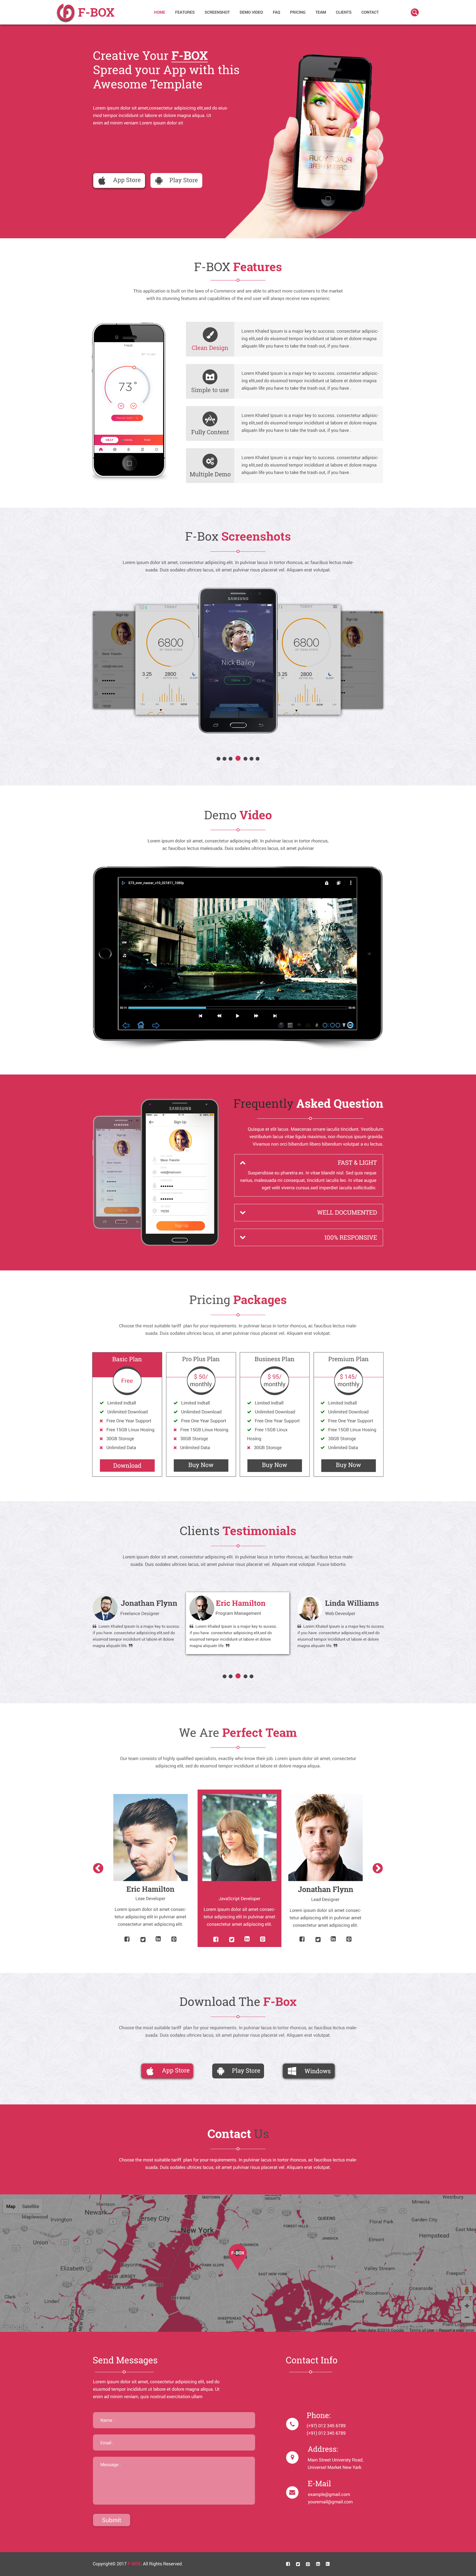 F Box Landing Page Mobile App Psd Template By Codetroopers Themeforest